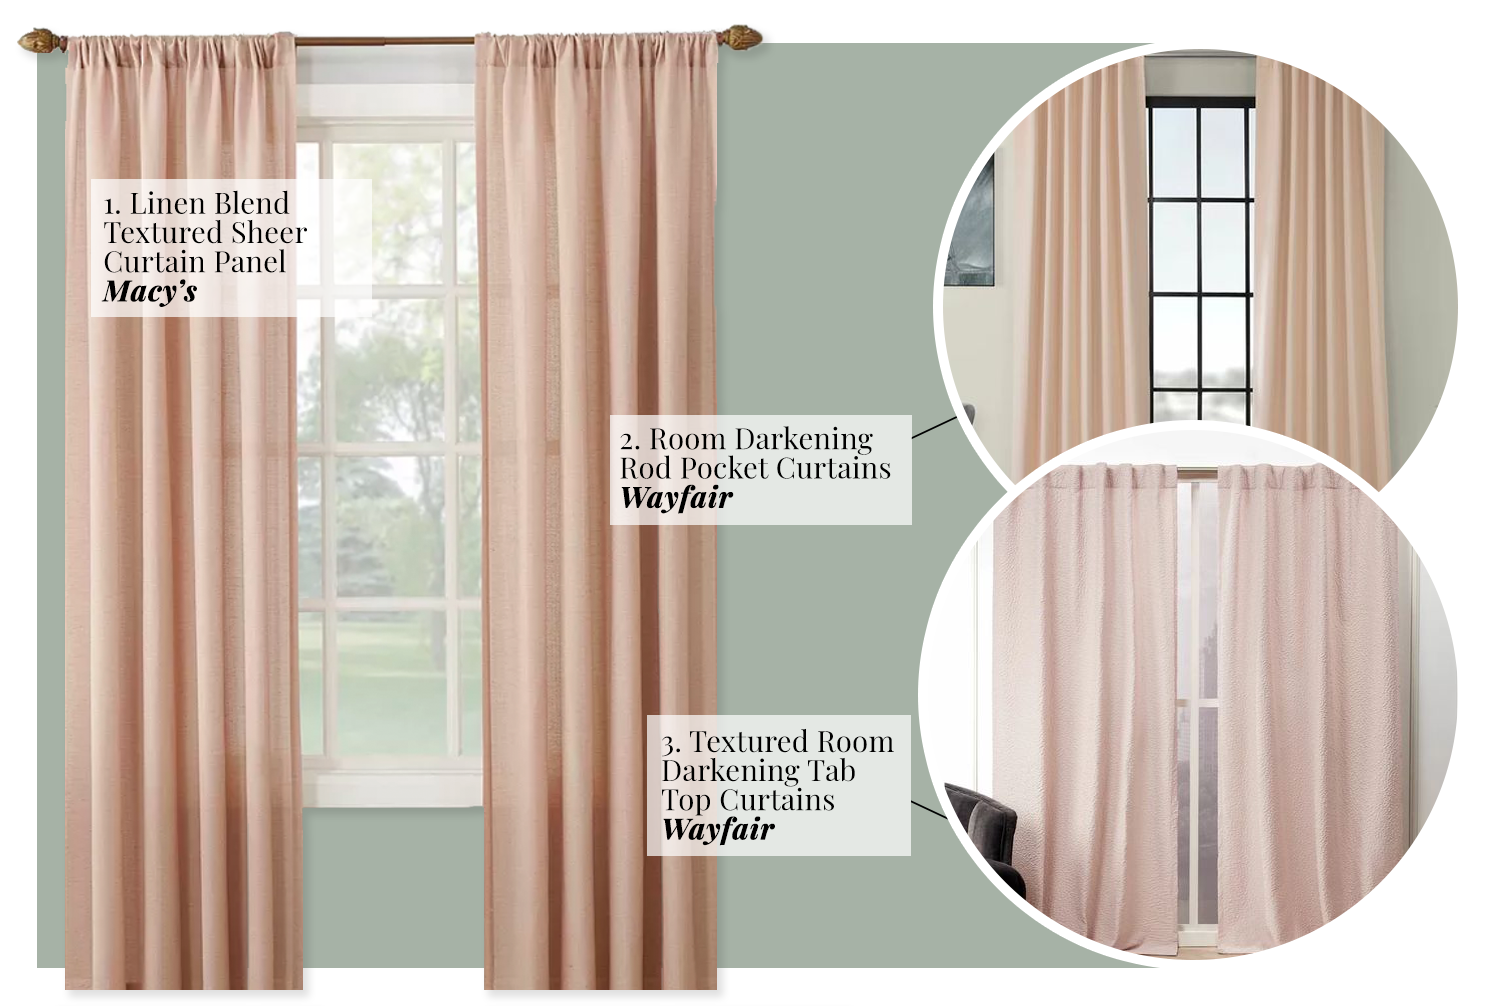 What Color Curtains Go With Sage Green Walls? - Soft pastel pink, peach, blush tones.